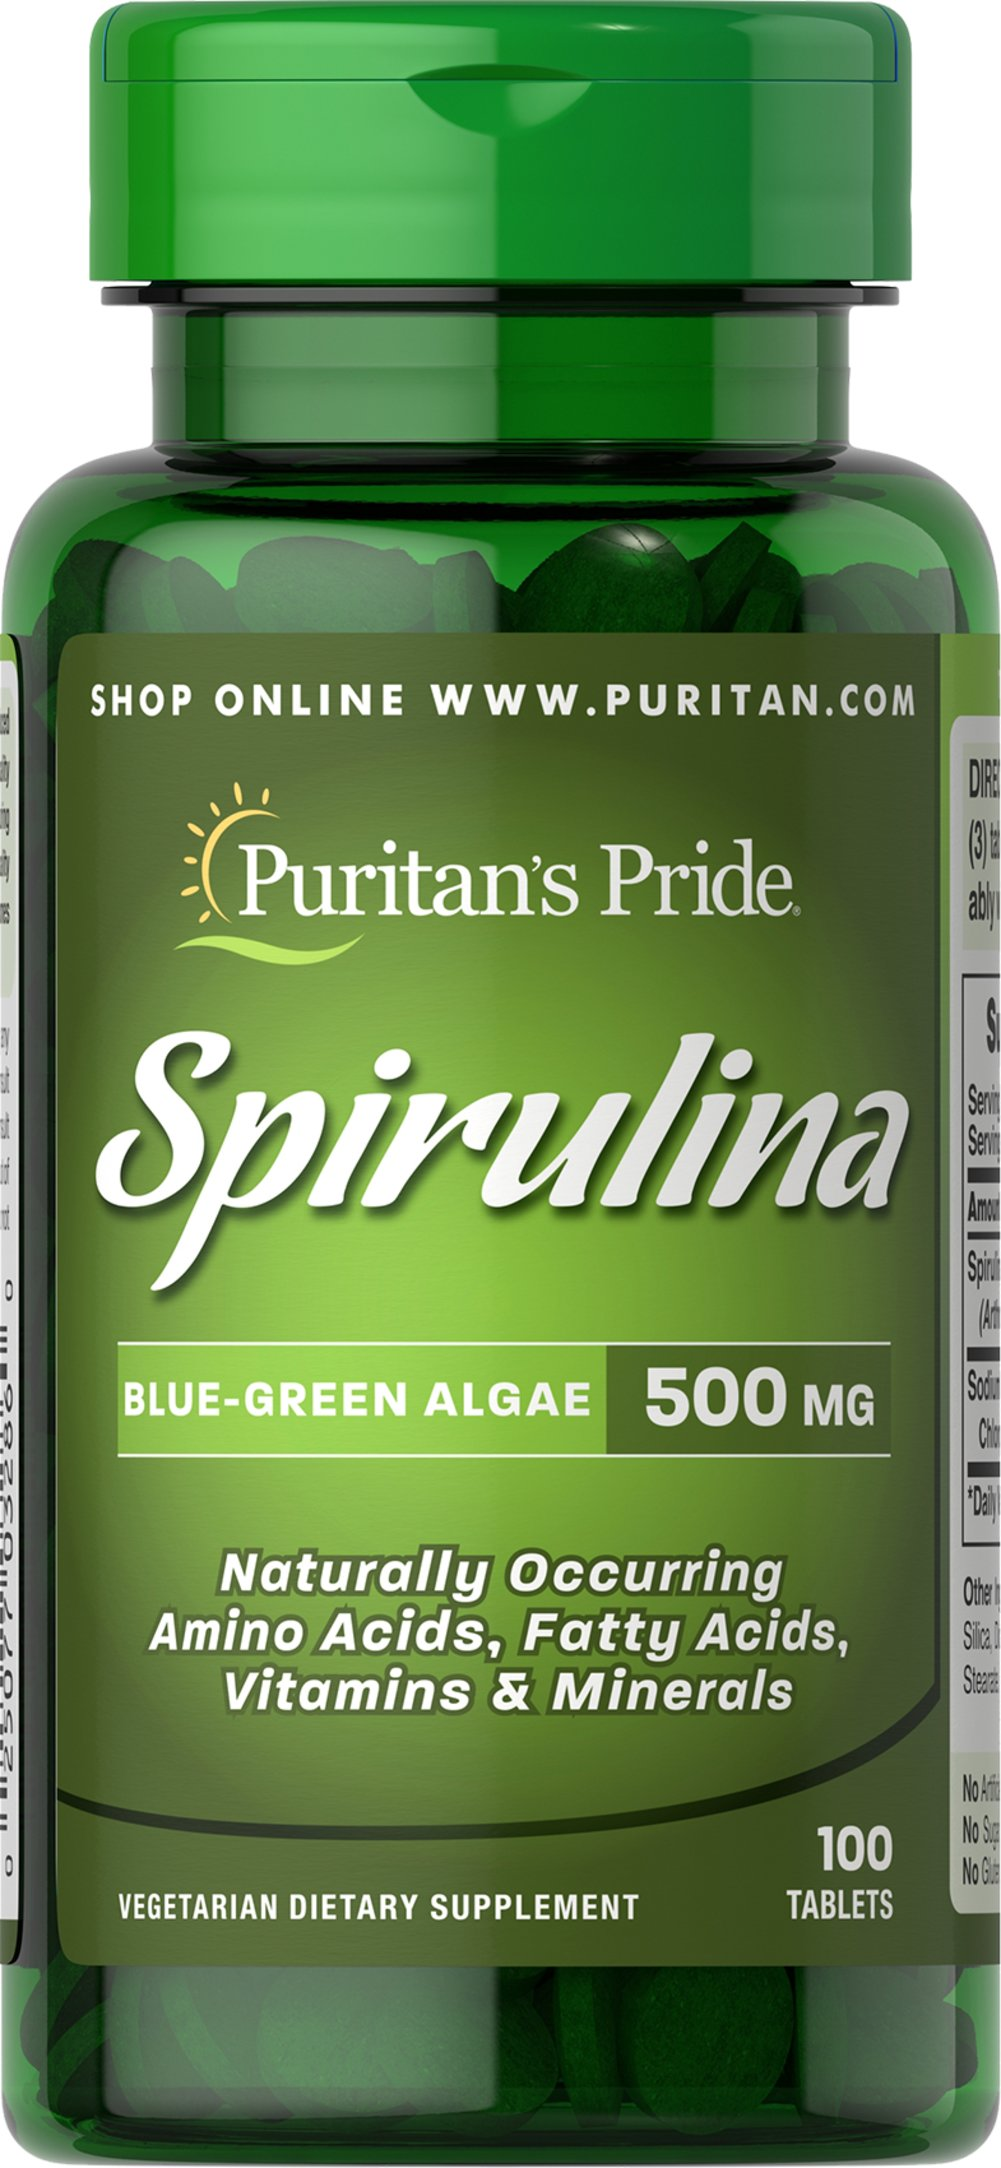 Spirulina 500 mg Thumbnail Alternate Bottle View